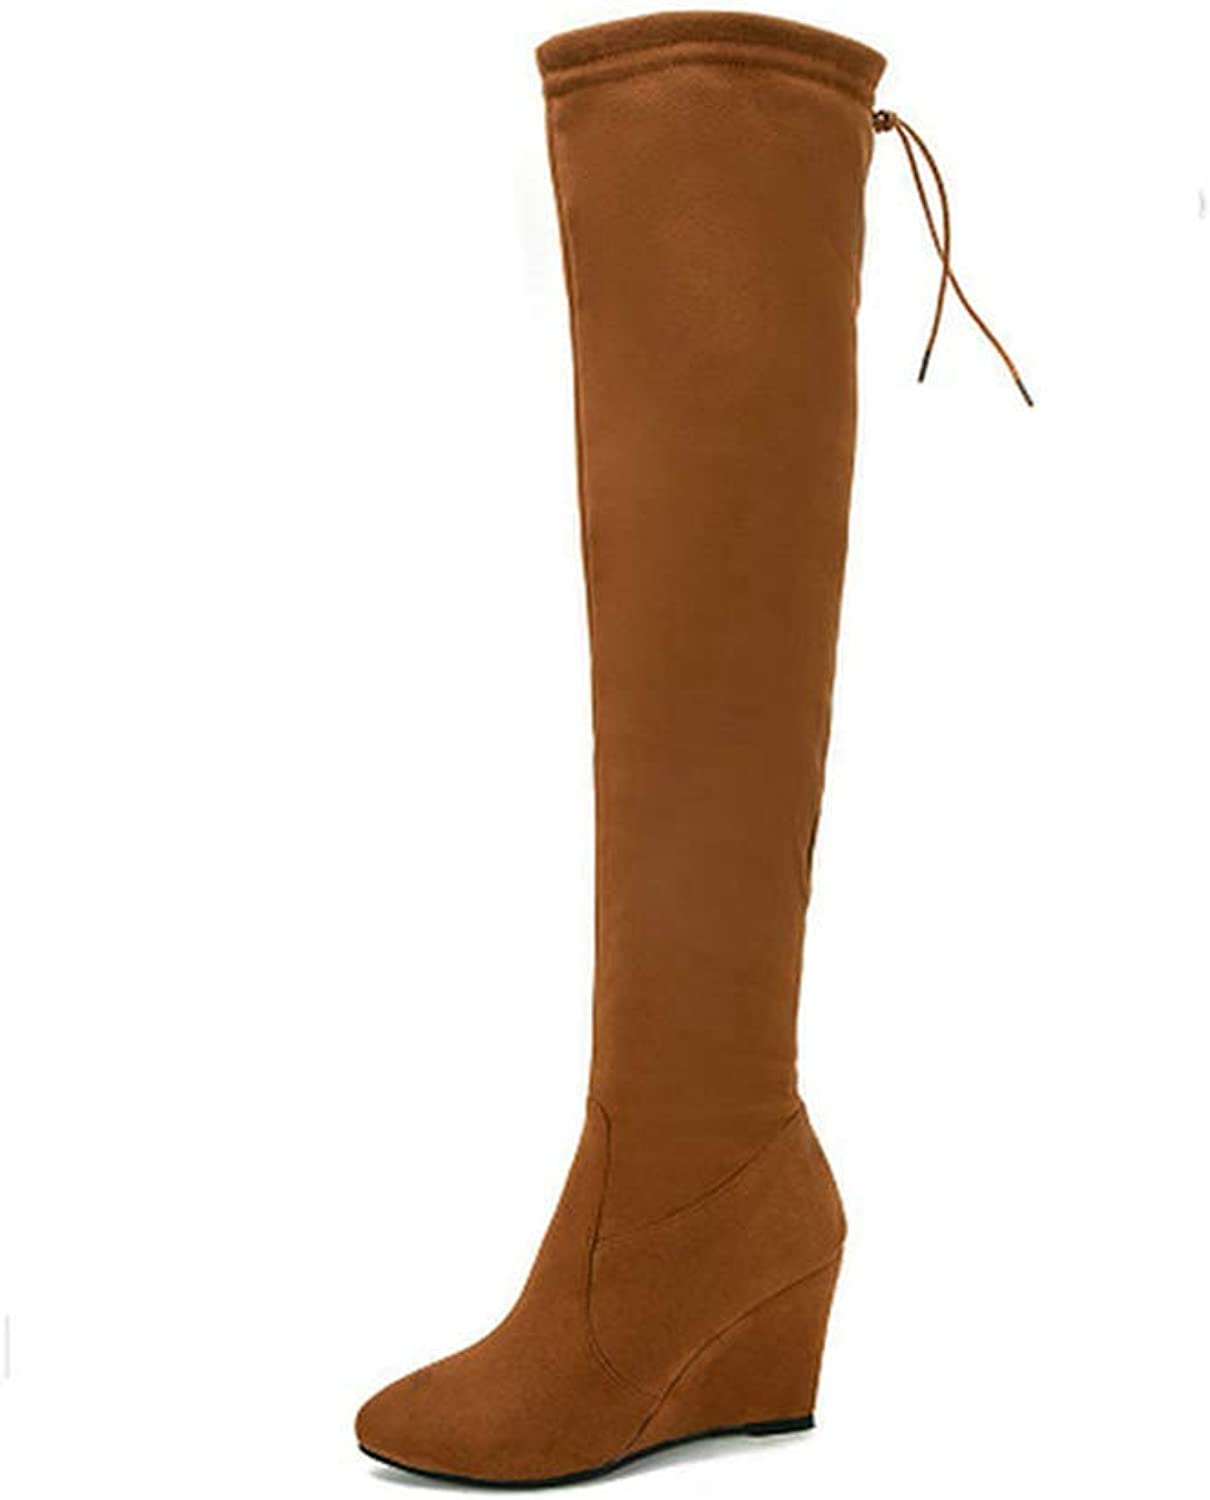 Woman Boot Wedges High Heel Zipper Over The Knee shoes Pointed Toe Lace Up Thigh High Boots